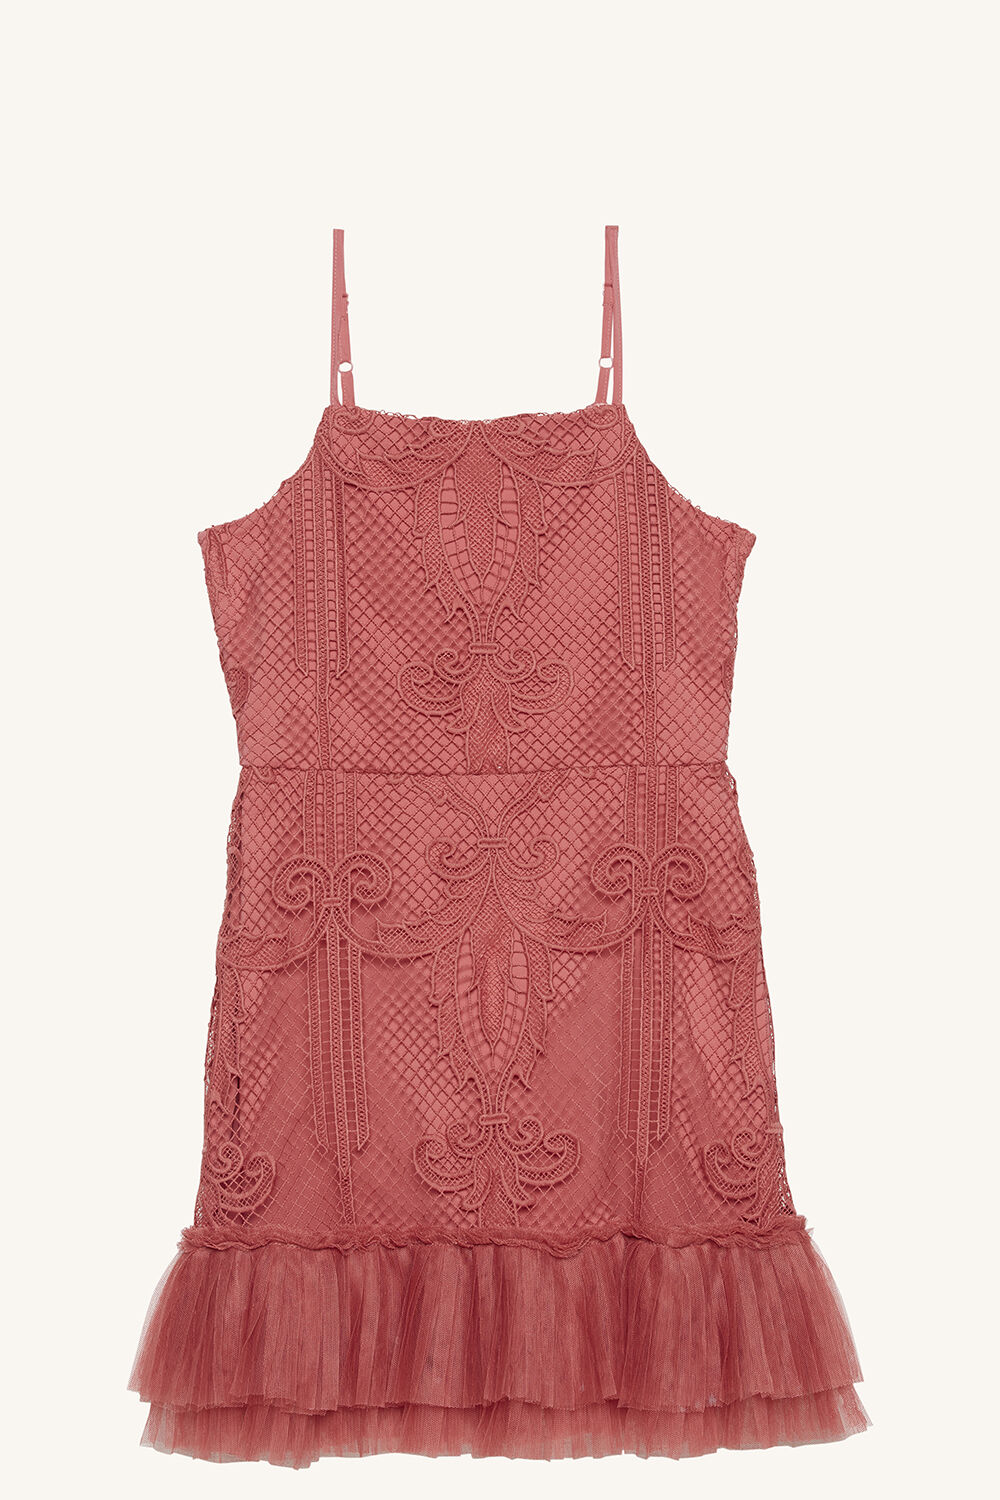 SOPHIE LACE DRESS in colour DUSTY ROSE